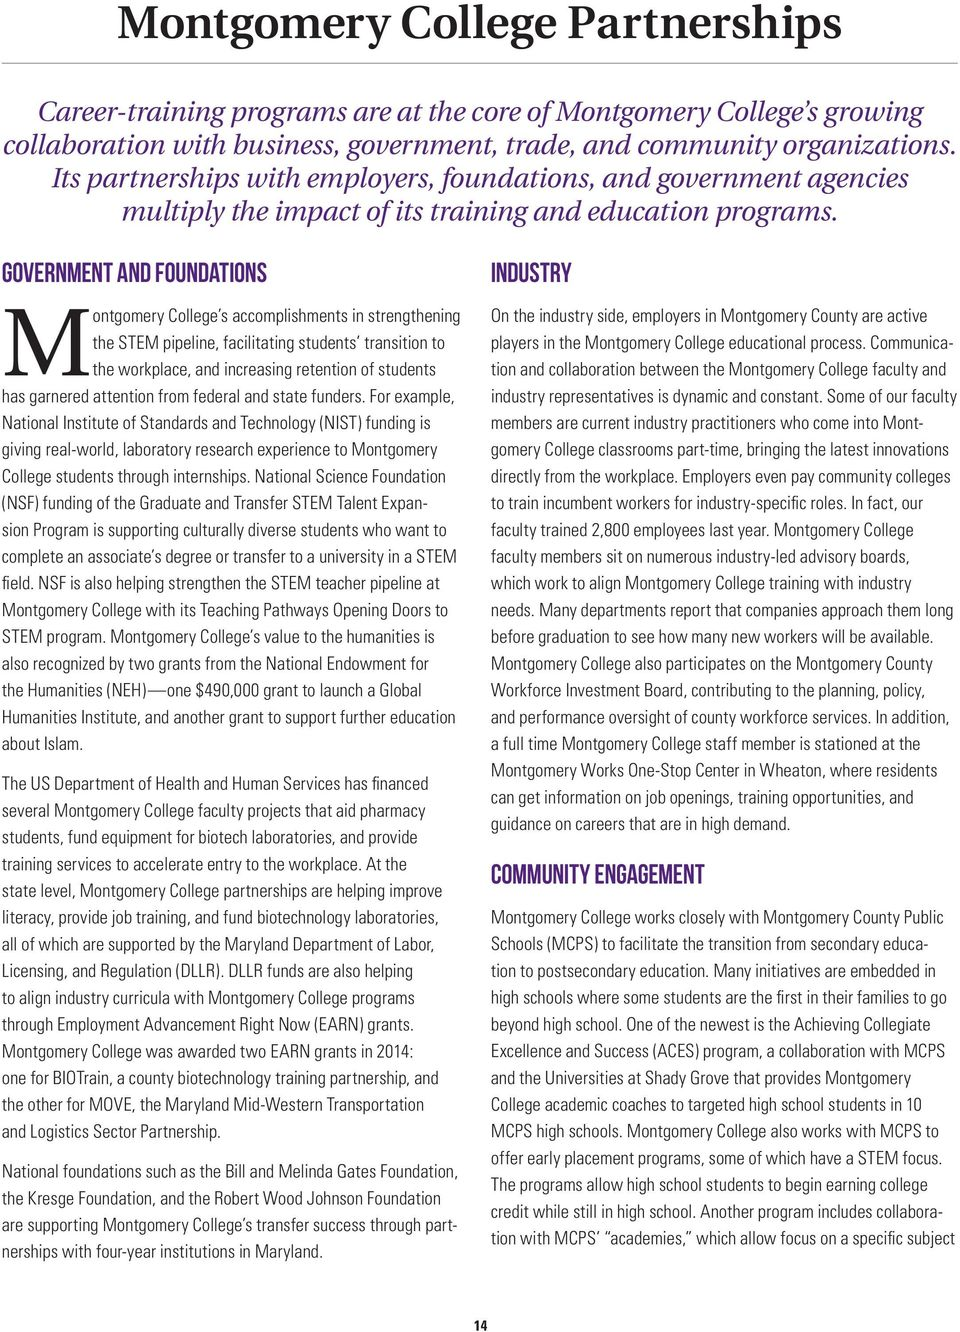 Government and Foundations Montgomery College s accomplishments in strengthening the STEM pipeline, facilitating students transition to the workplace, and increasing retention of students has